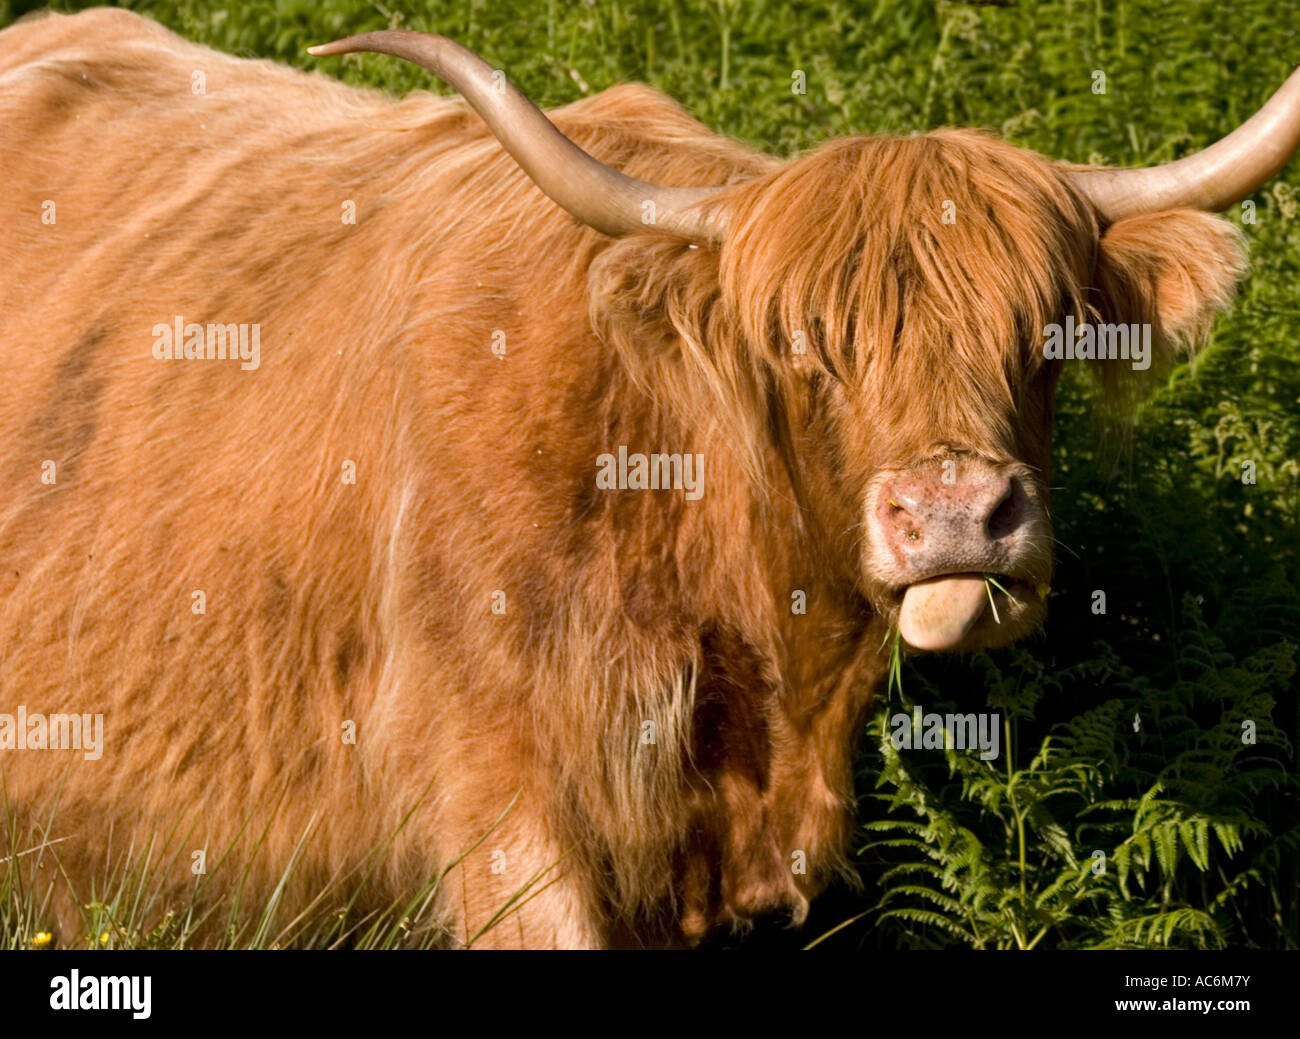 Closeup of highland cattle grazing in field Stock Photo